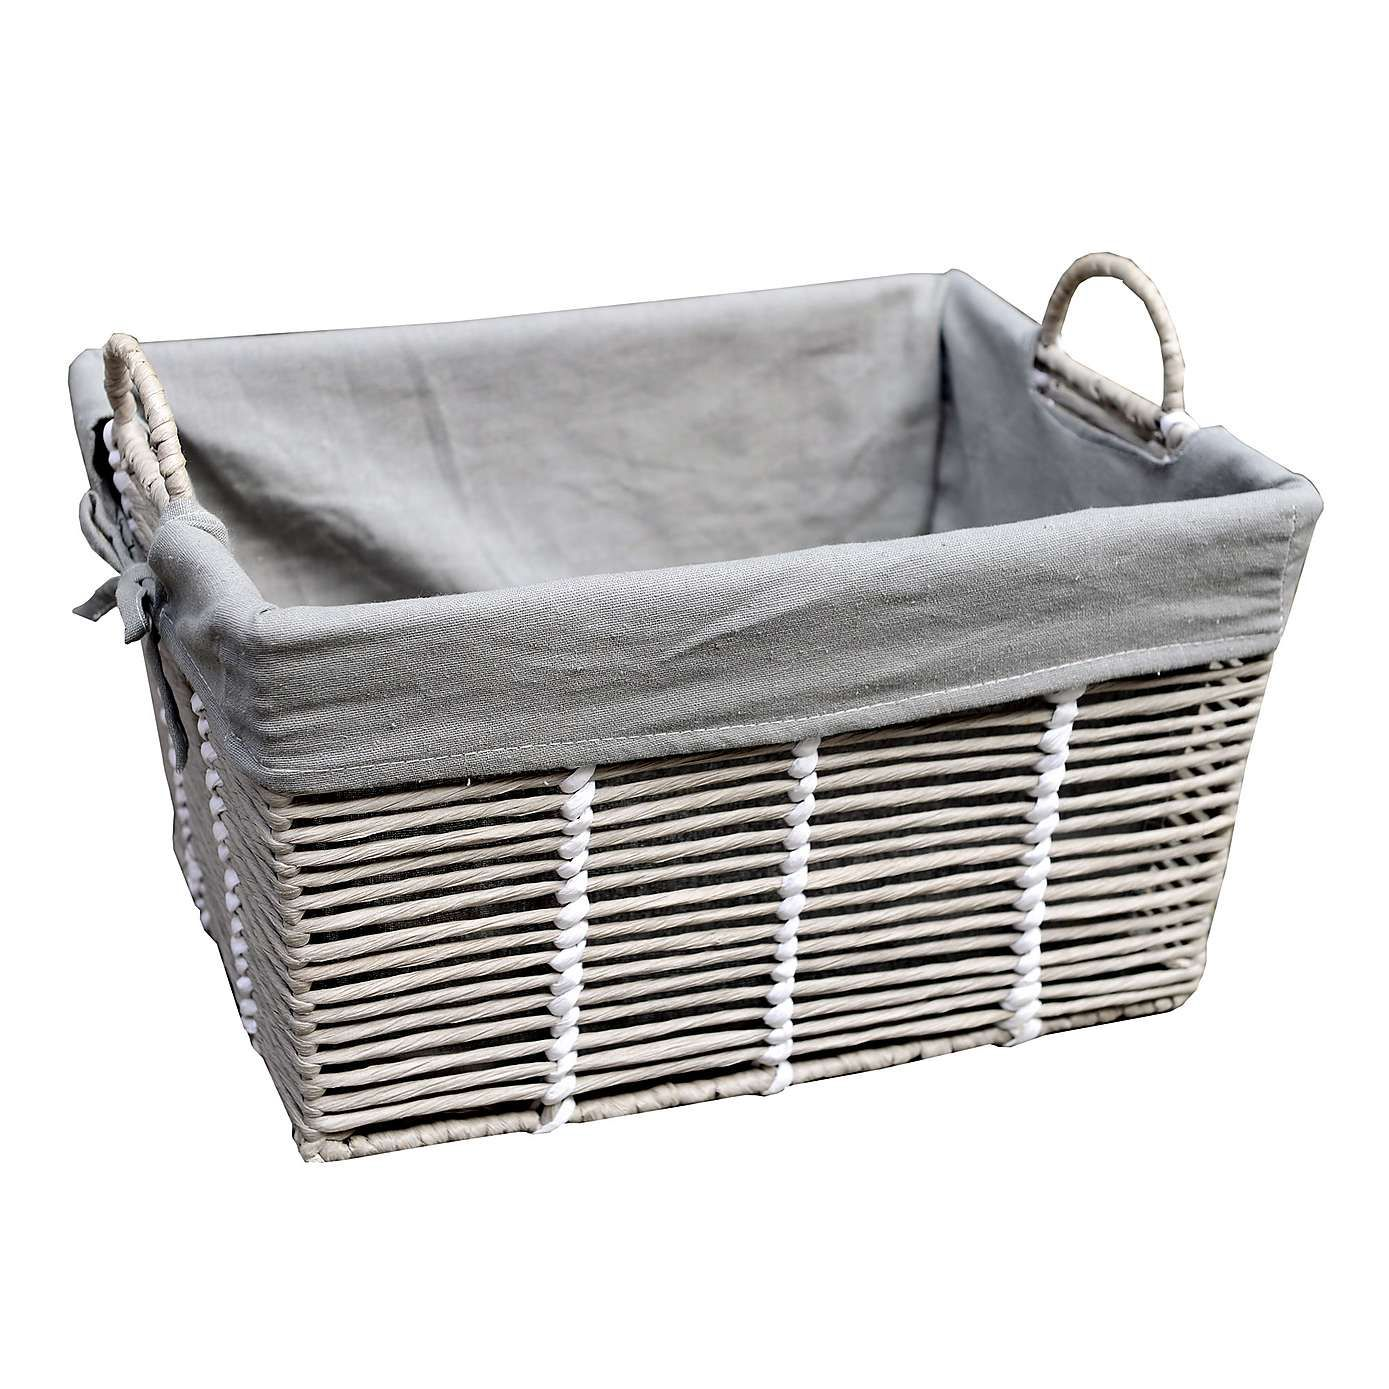 Buy Grasmere Grey Wash Wicker Storage Basket From The: Purity Grey Basket With Handles